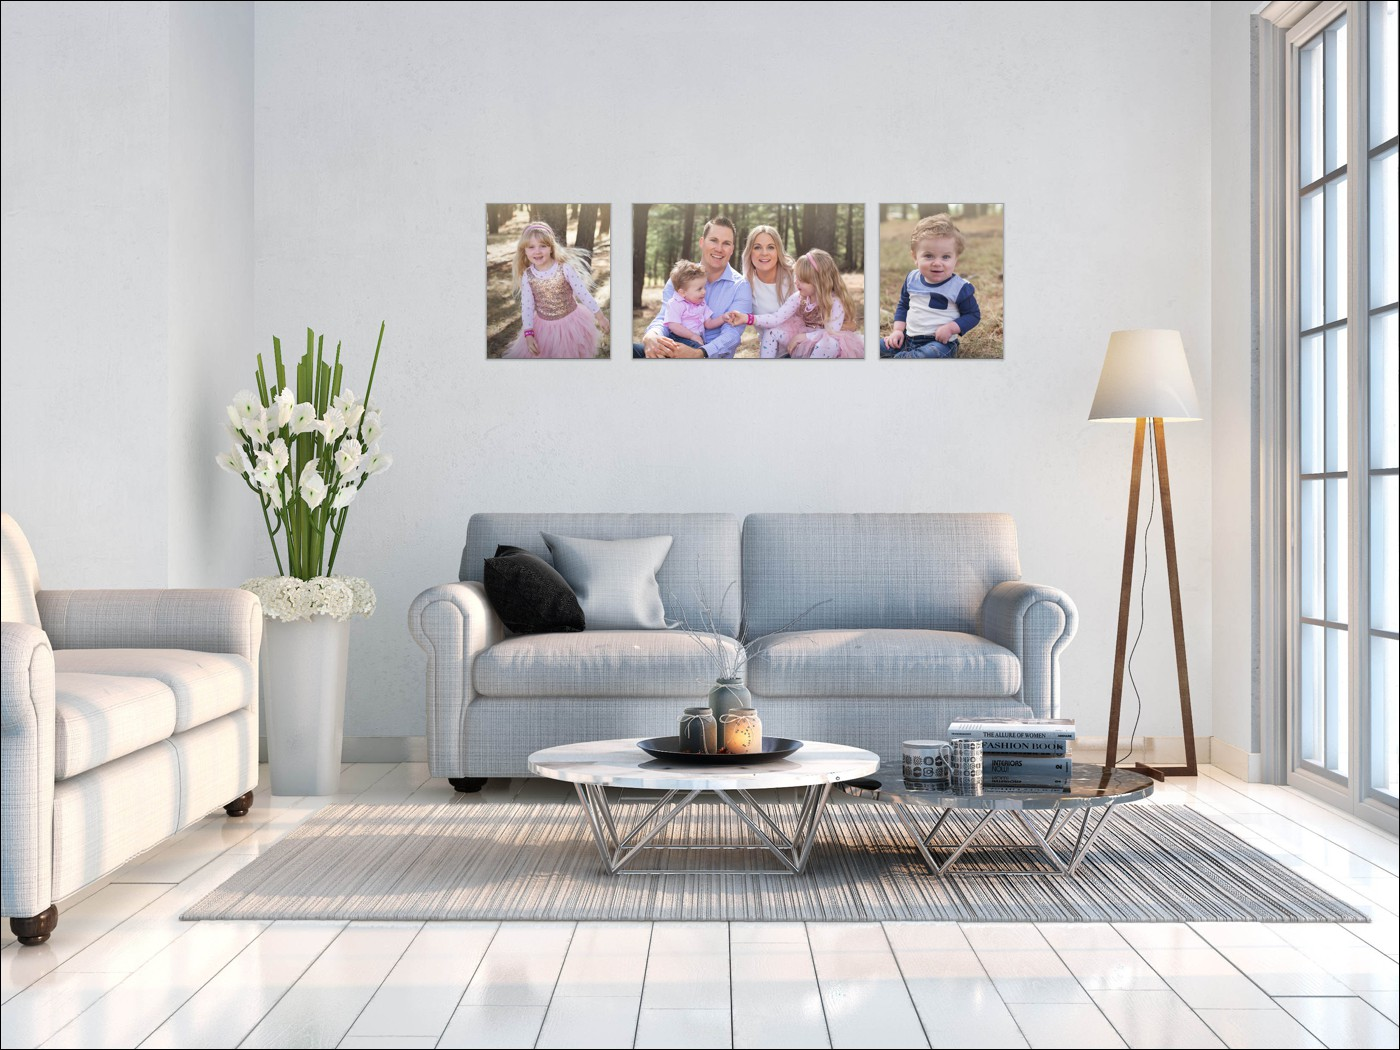 """WaLL ART Collections - Wall art collections come in all sizes for your walls. This one displayed on this wall is one 20x30"""" & two 16x20"""" which can showcase a couple of different images. This wall art collection displayed is $1550 (saving of $440)."""